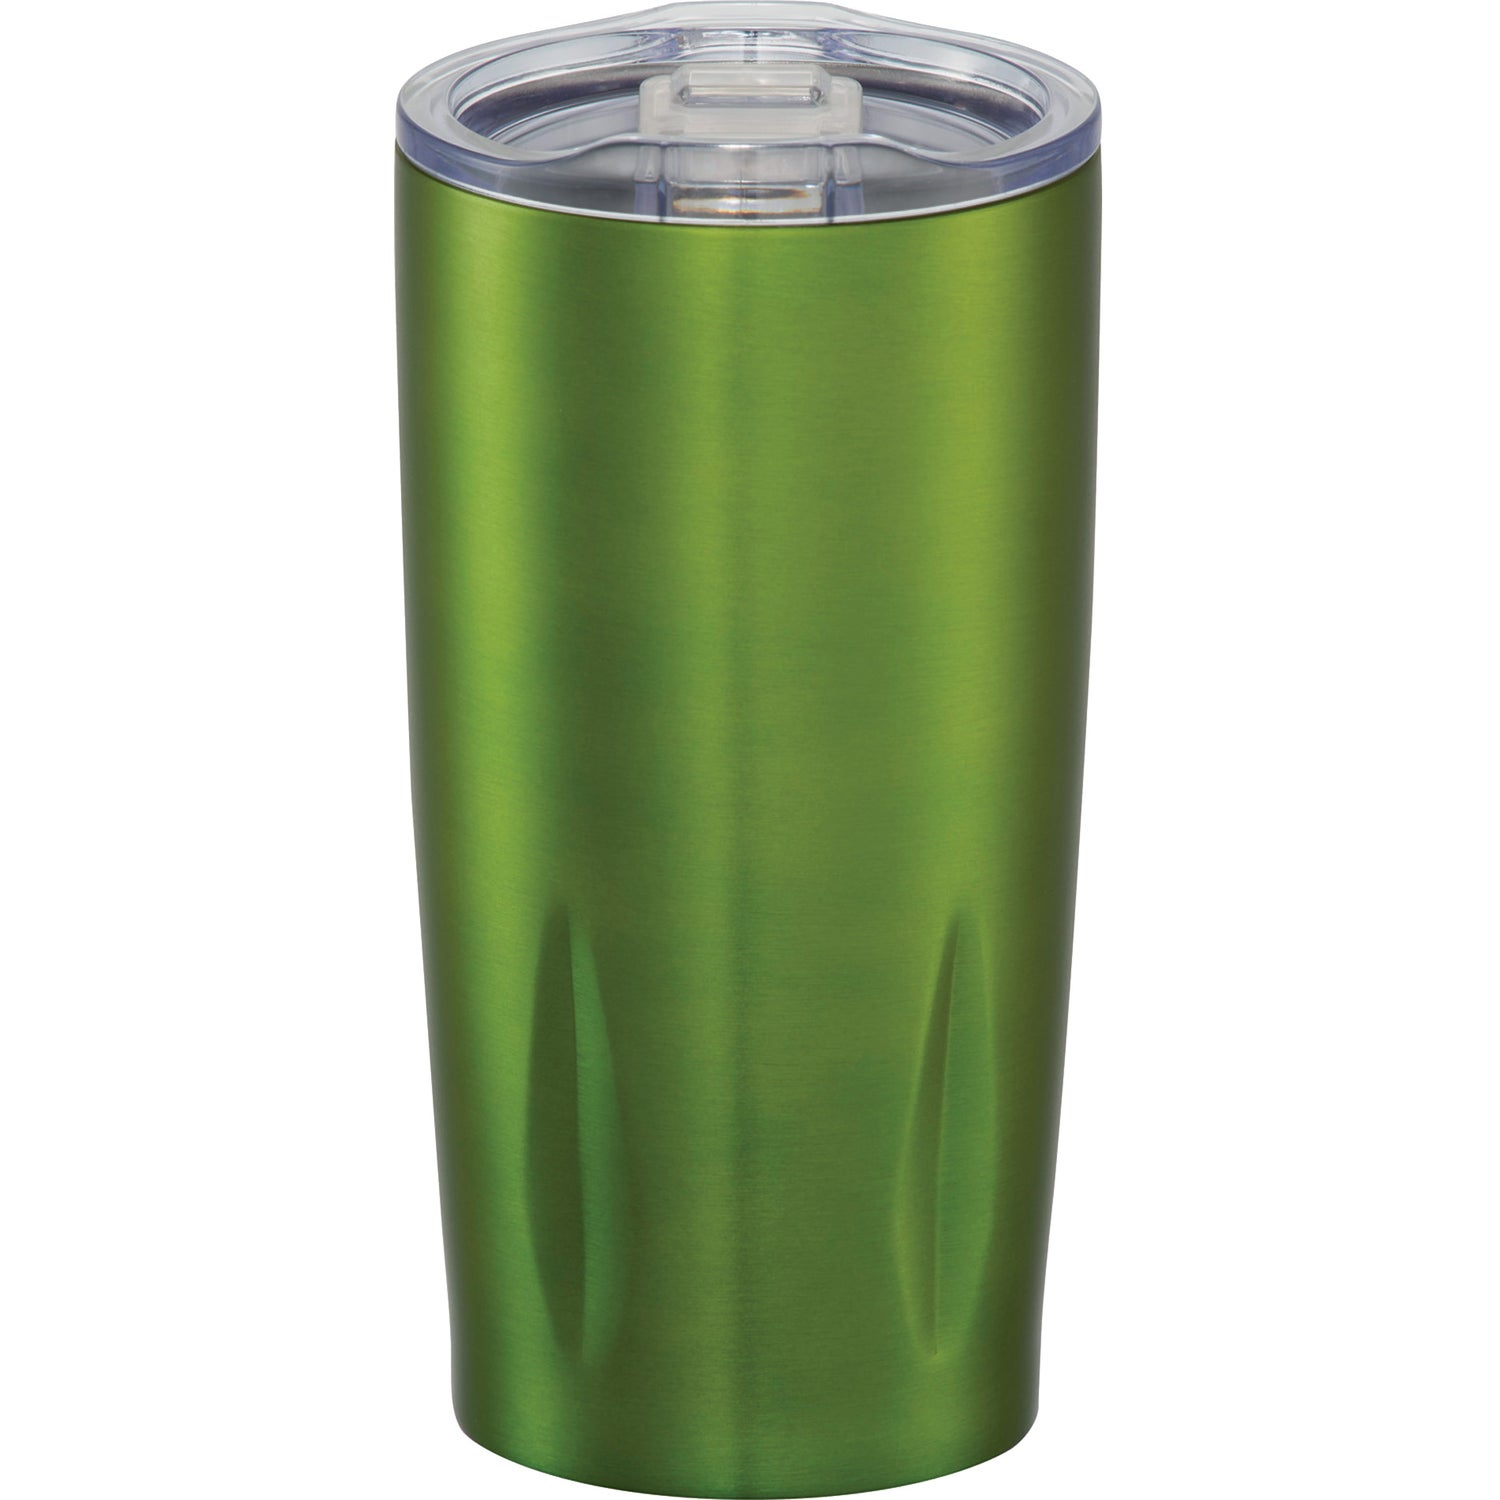 c55d7e35377 CLICK HERE to Order 20 Oz. Adrian Vacuum Tumblers Printed with Your Logo  for $9.51 Ea.